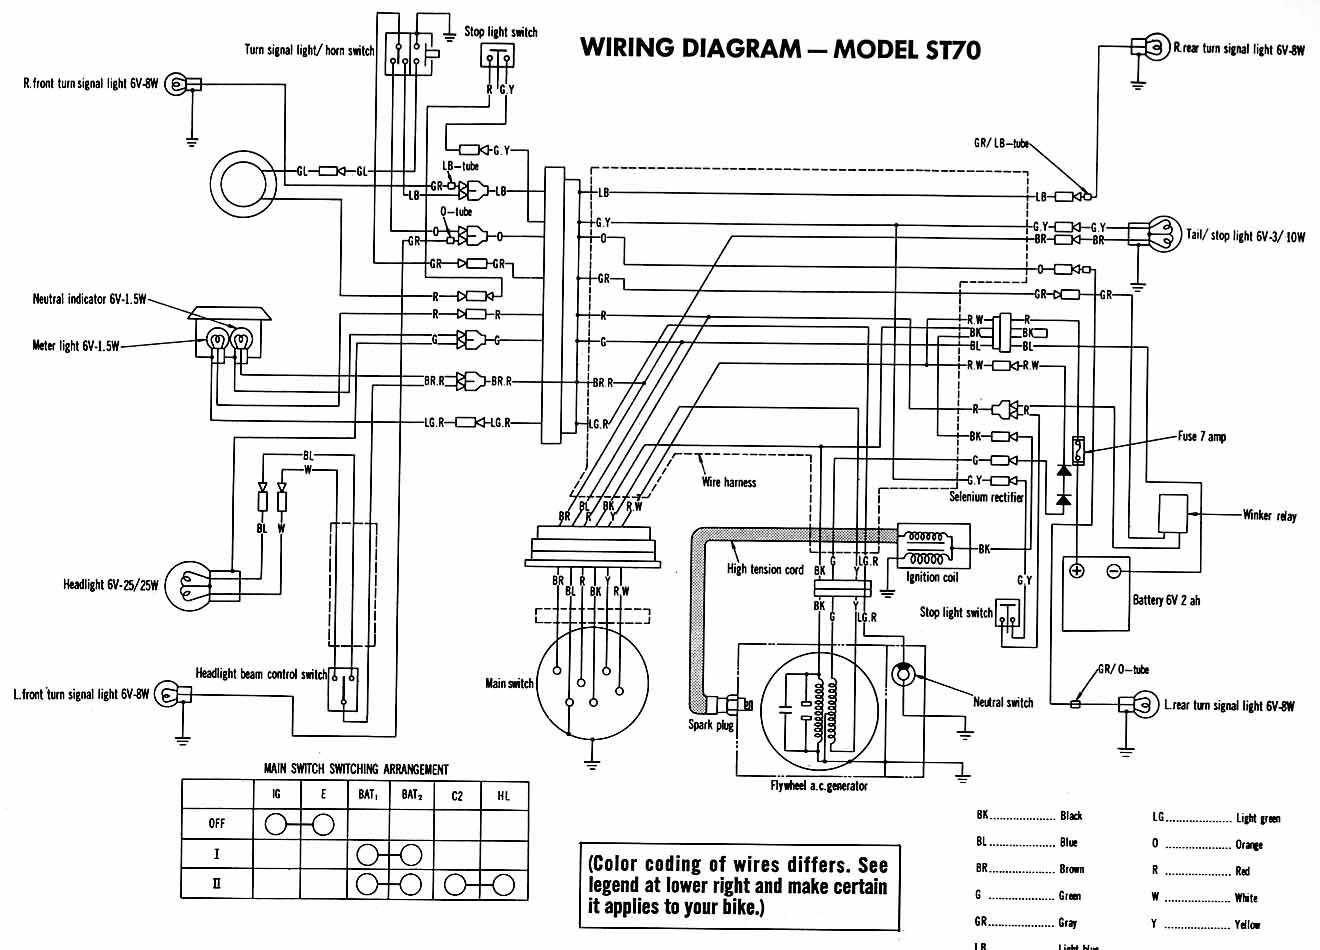 Motorcycle Wiring Harness Diagram : Honda cr v fuse box diagram free engine image